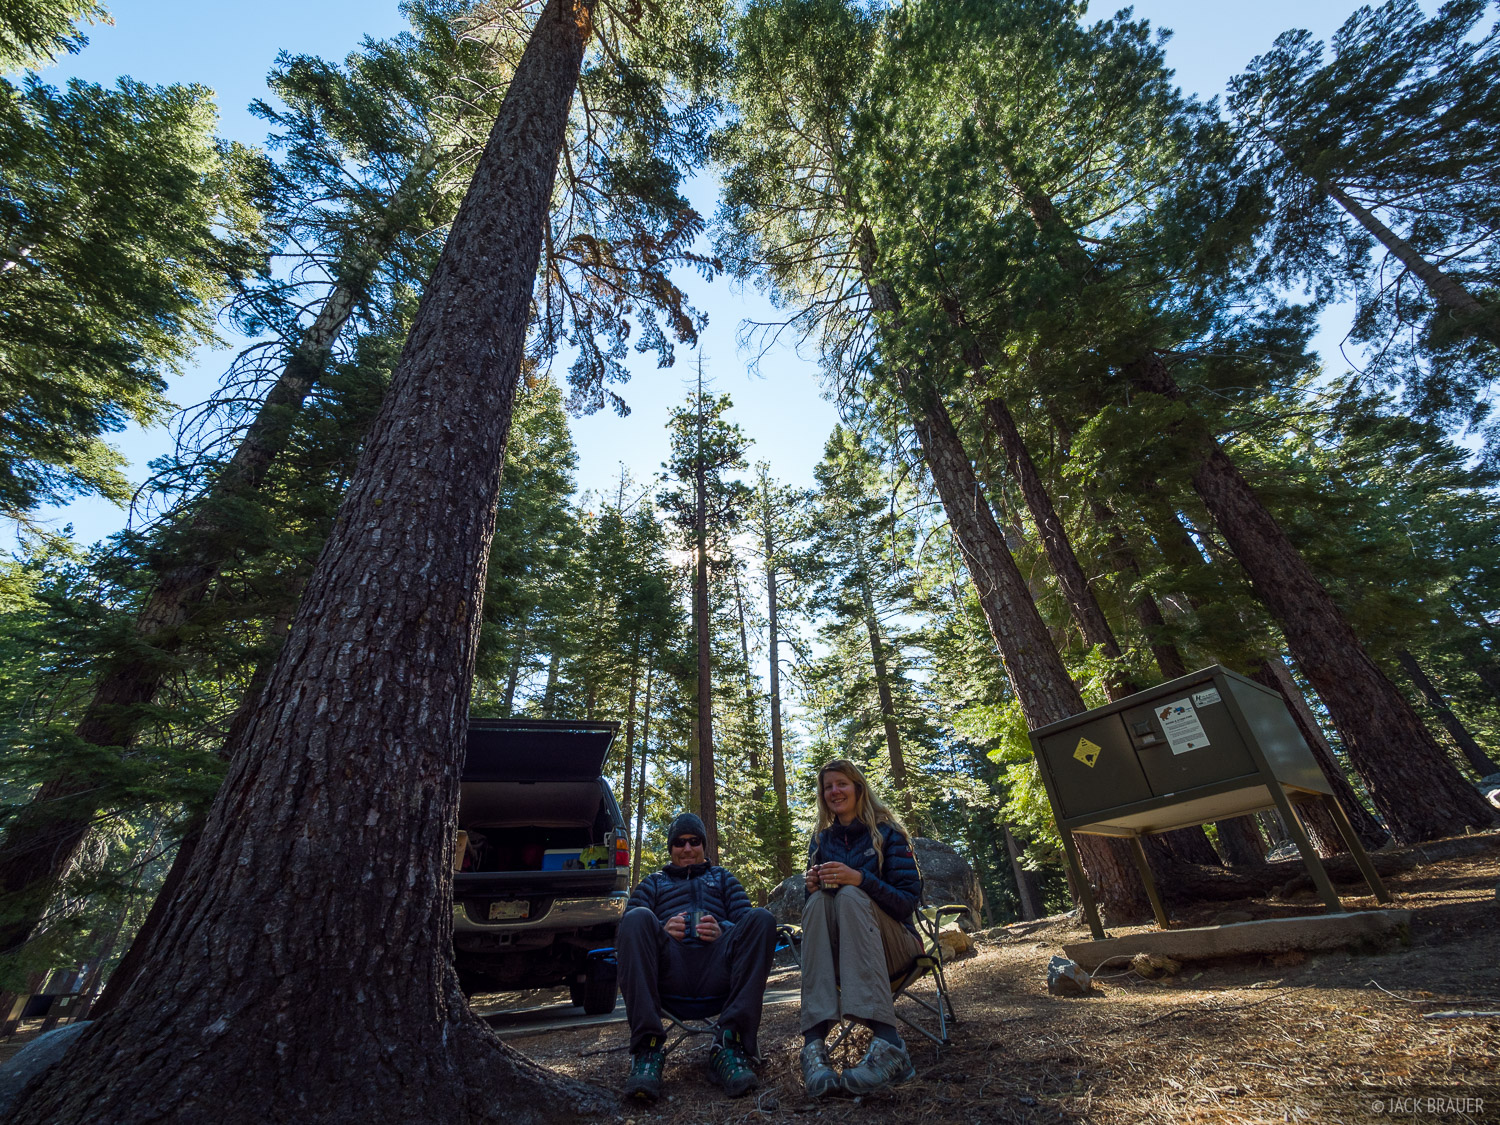 Our campsite at the D.L. Bliss State Park Campground at Lake Tahoe, California.